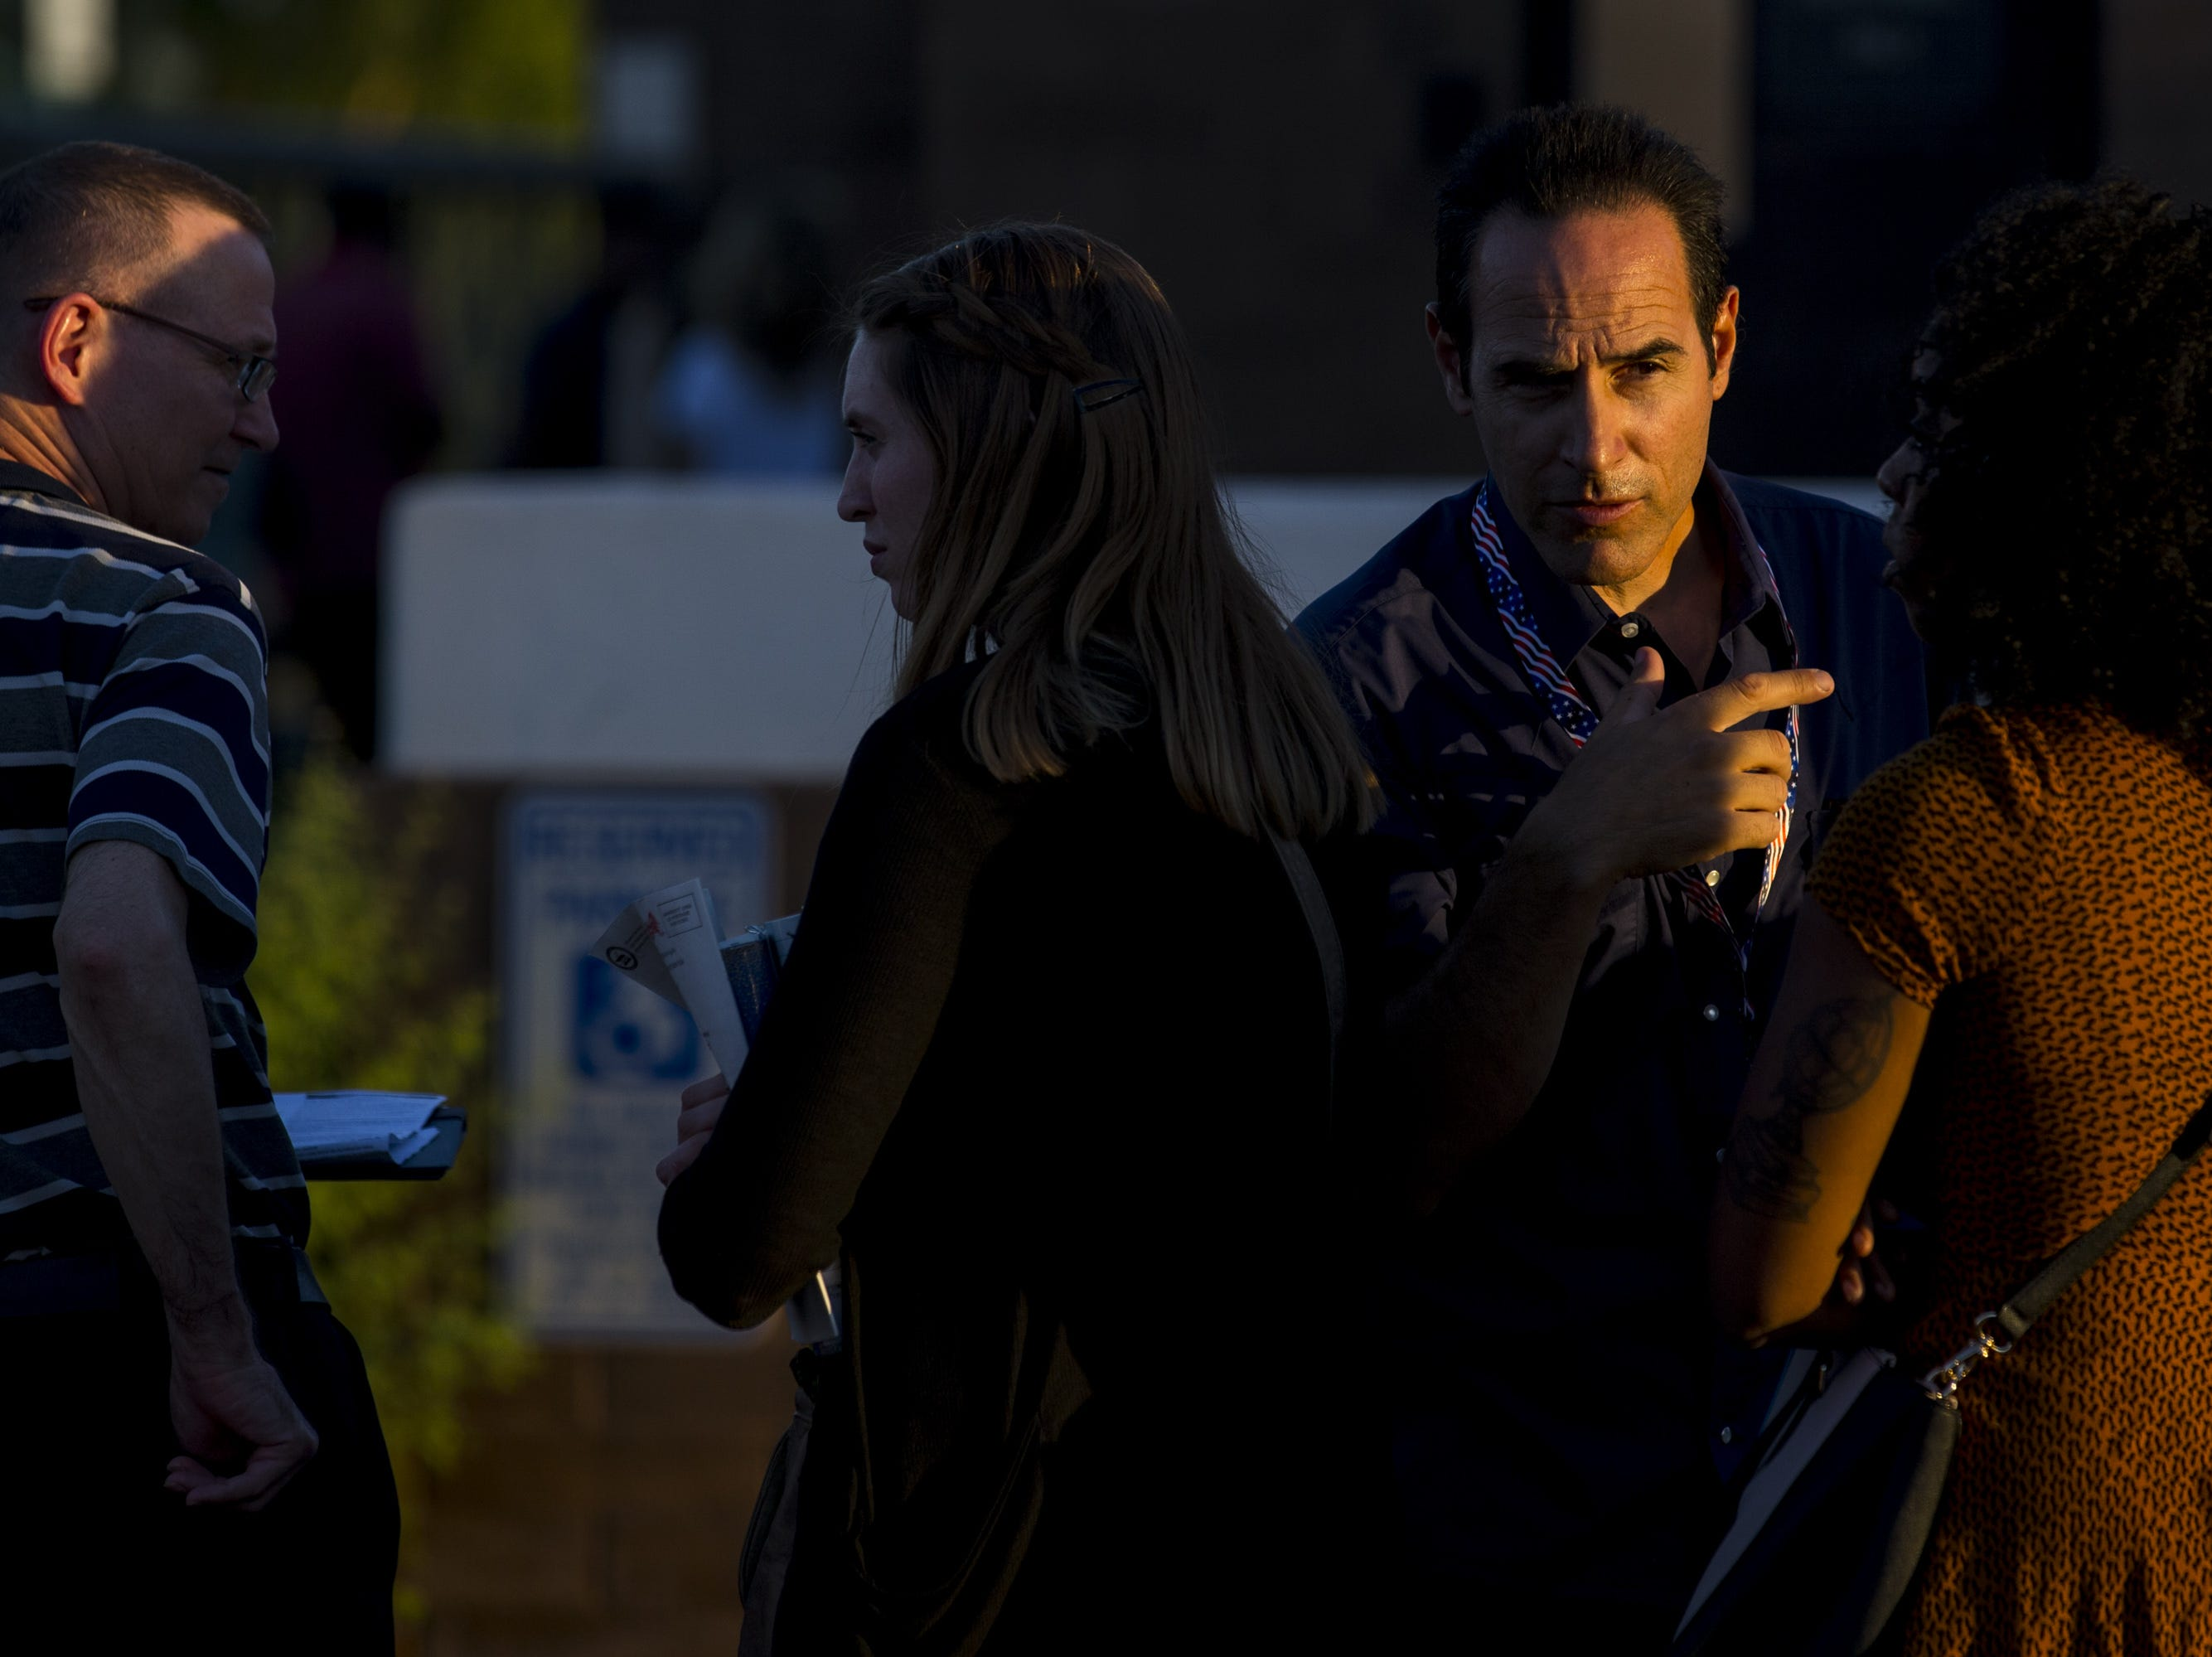 Tristan, a Maricopa County Elections worker, talks to people waiting in line to vote on Tuesday, Aug. 28, 2018, at the Phoenix Public Library Century Branch in Phoenix.